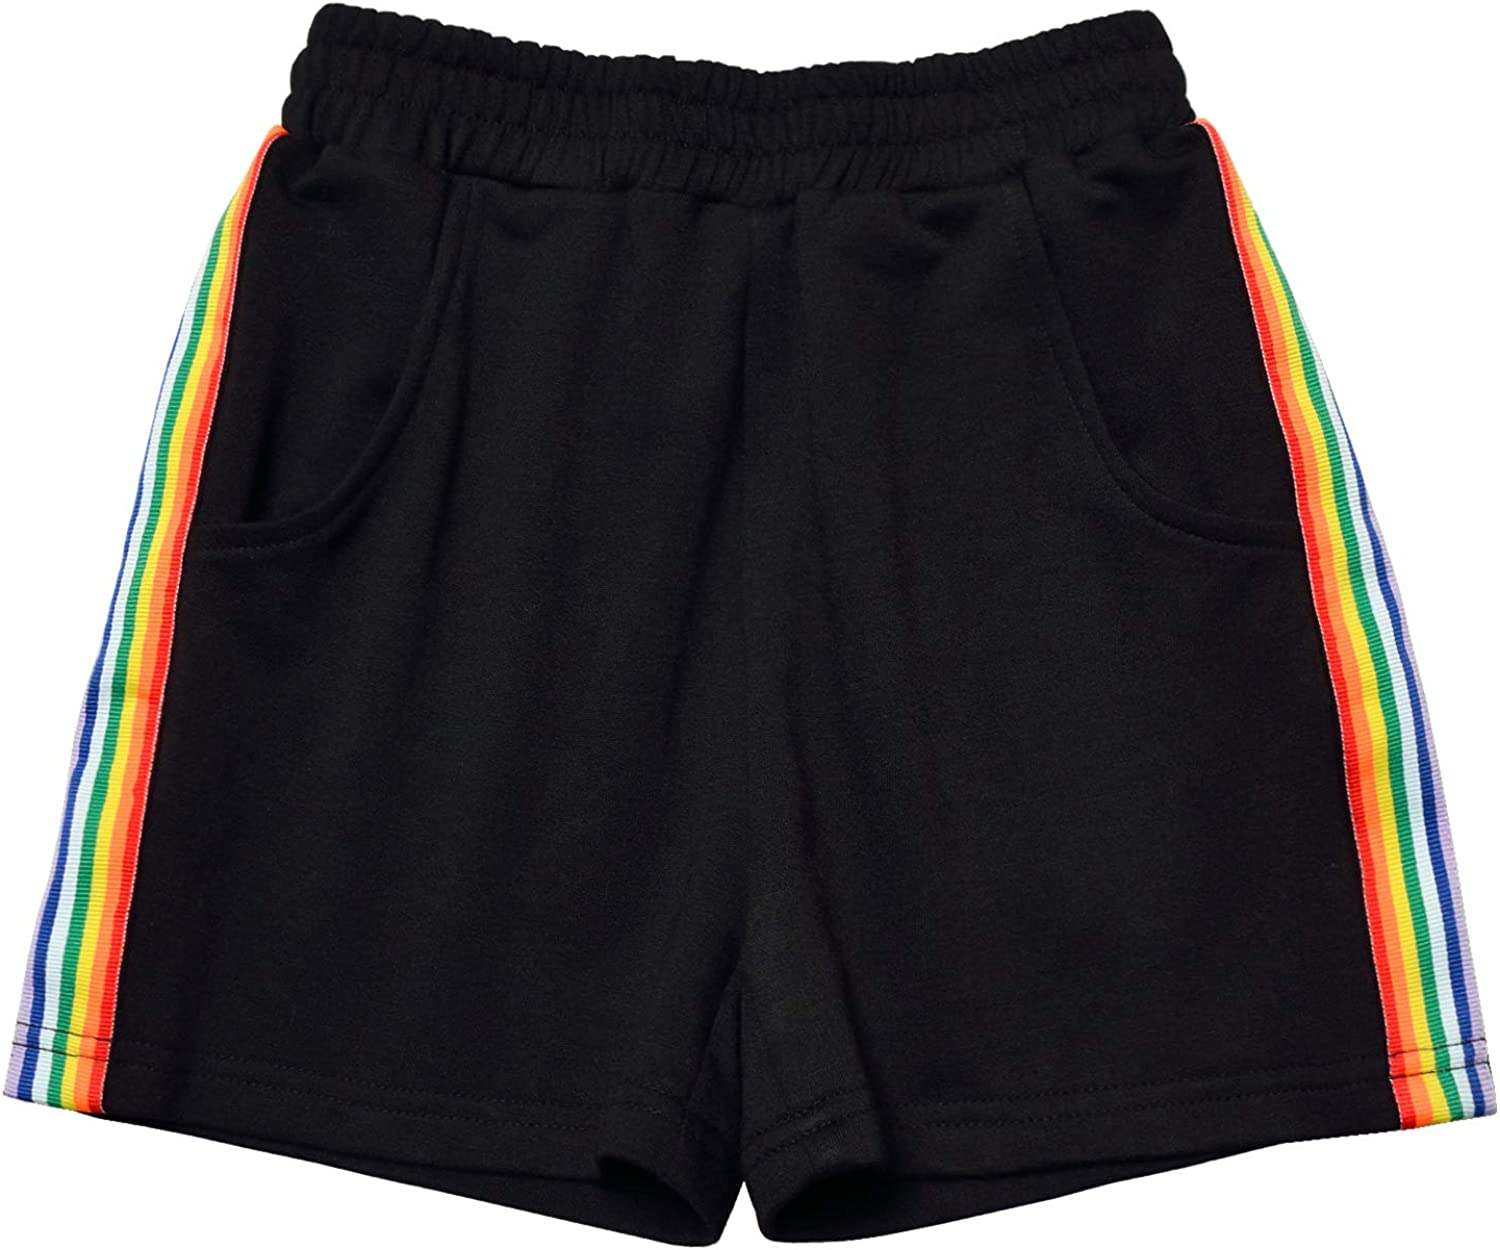 Mirawise Girl Athletic Soccer Play Translated Active Sports Running Jacksonville Mall Shorts